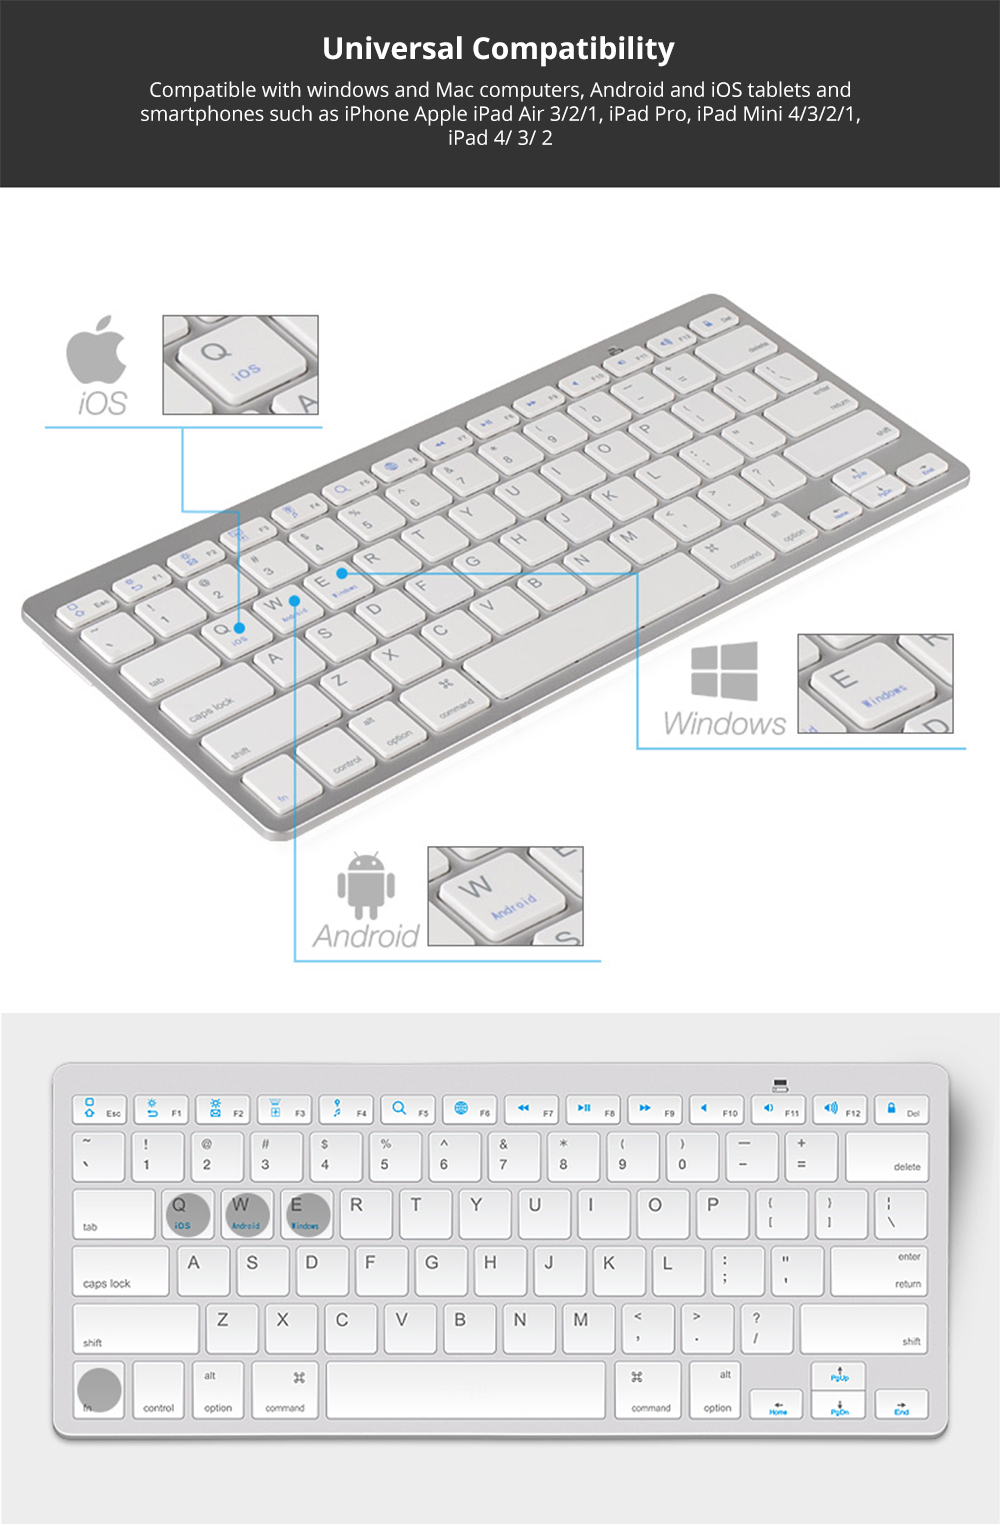 Universal Ultra-slim Bluetooth Keyboard Portable Wireless Bluetooth Keyboard for Apple iPad Air 3/2/1, iPad Pro, iPad Mini 4/3/2/1, iPad 4/ 3/ 2, iPhone, Windows and Mac Computers, Android and iOS Tablets and Smartphones Available 7